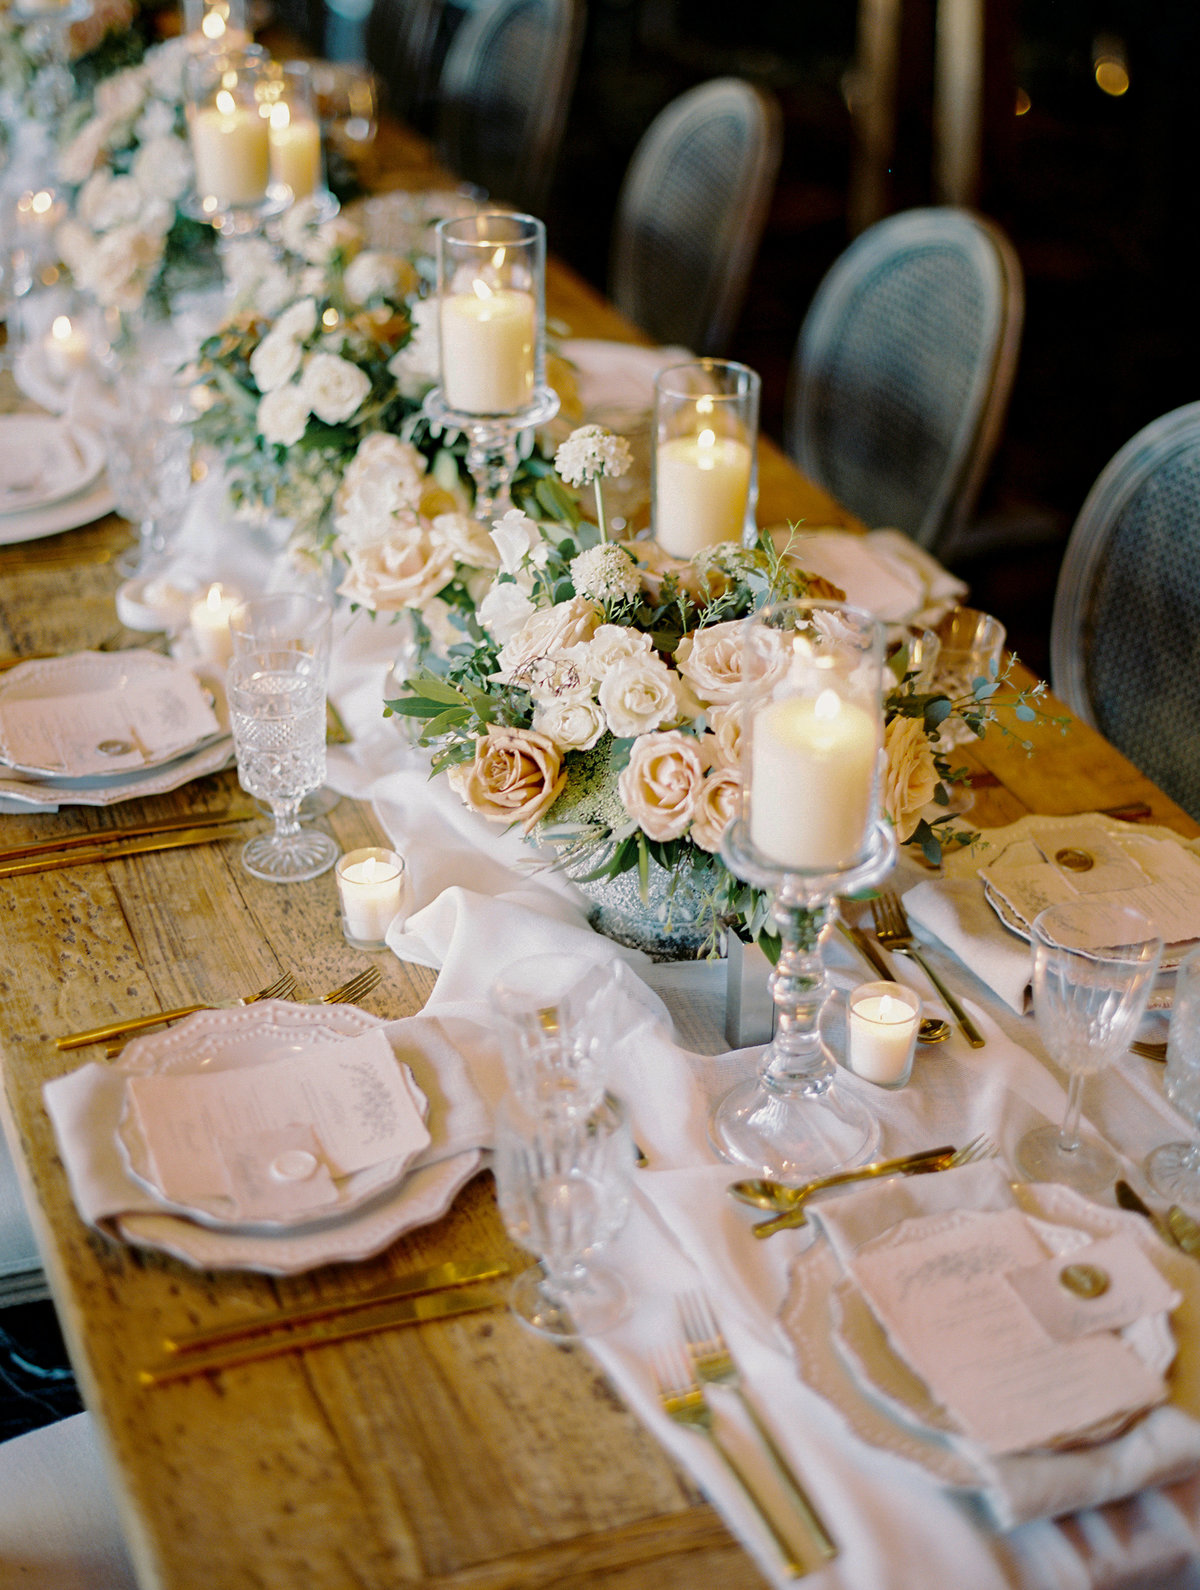 a rustic wood table with white flowy linen and a floral centerpiece with white, ivory and rust colored roses with white candles